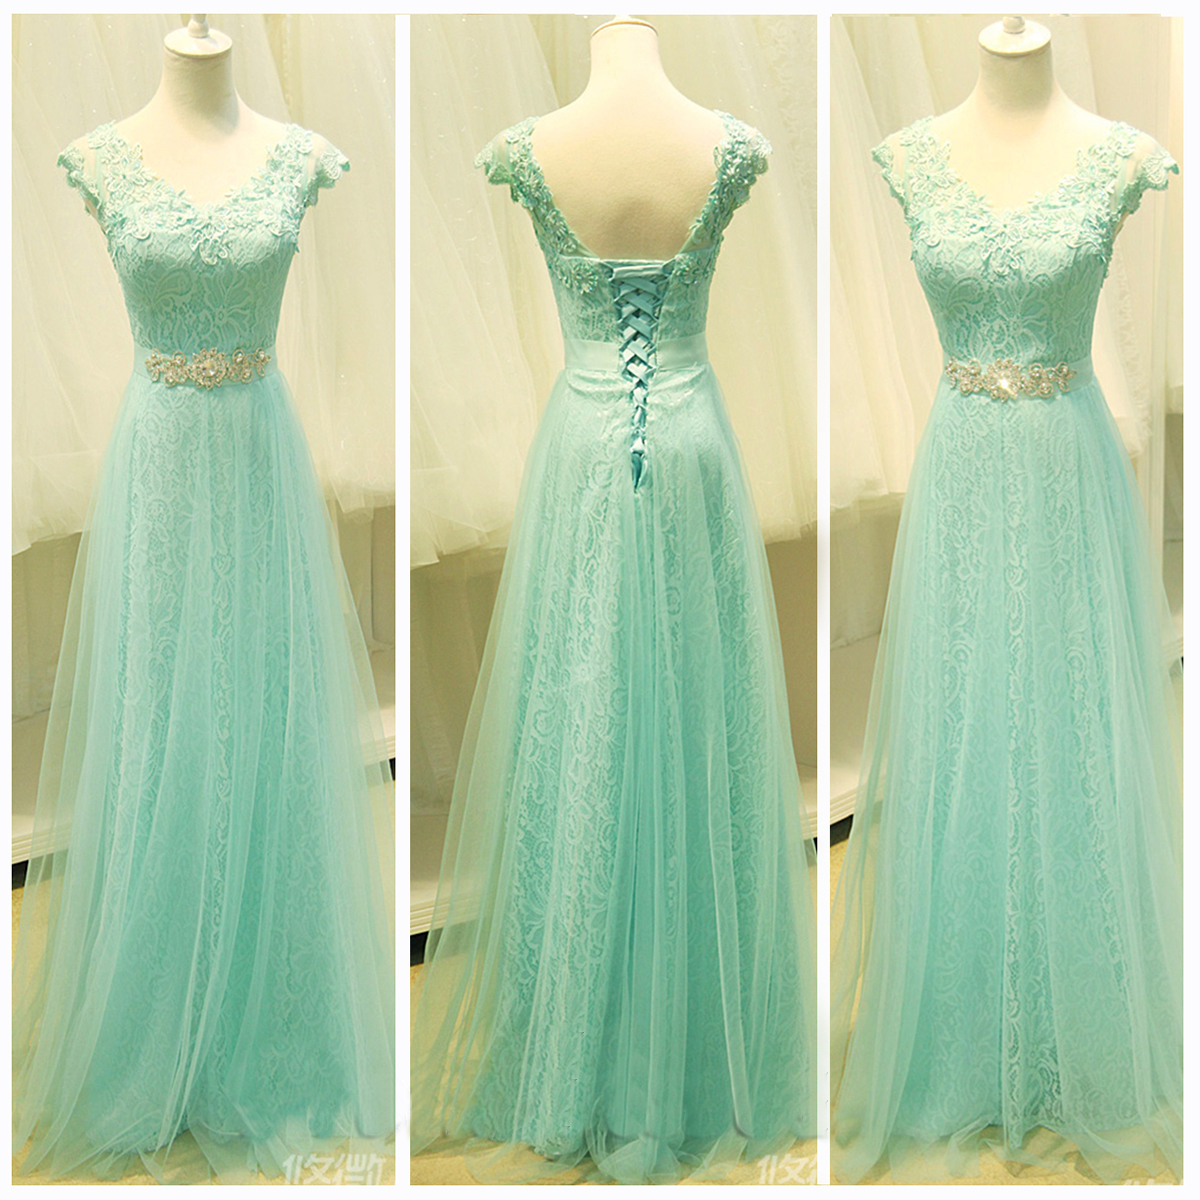 A Line Mint Lace Tulle Cap Sleeves Prom Dresses Beaded Belt V Neck Evening Gown Dress Custom Made Back Up Graduation